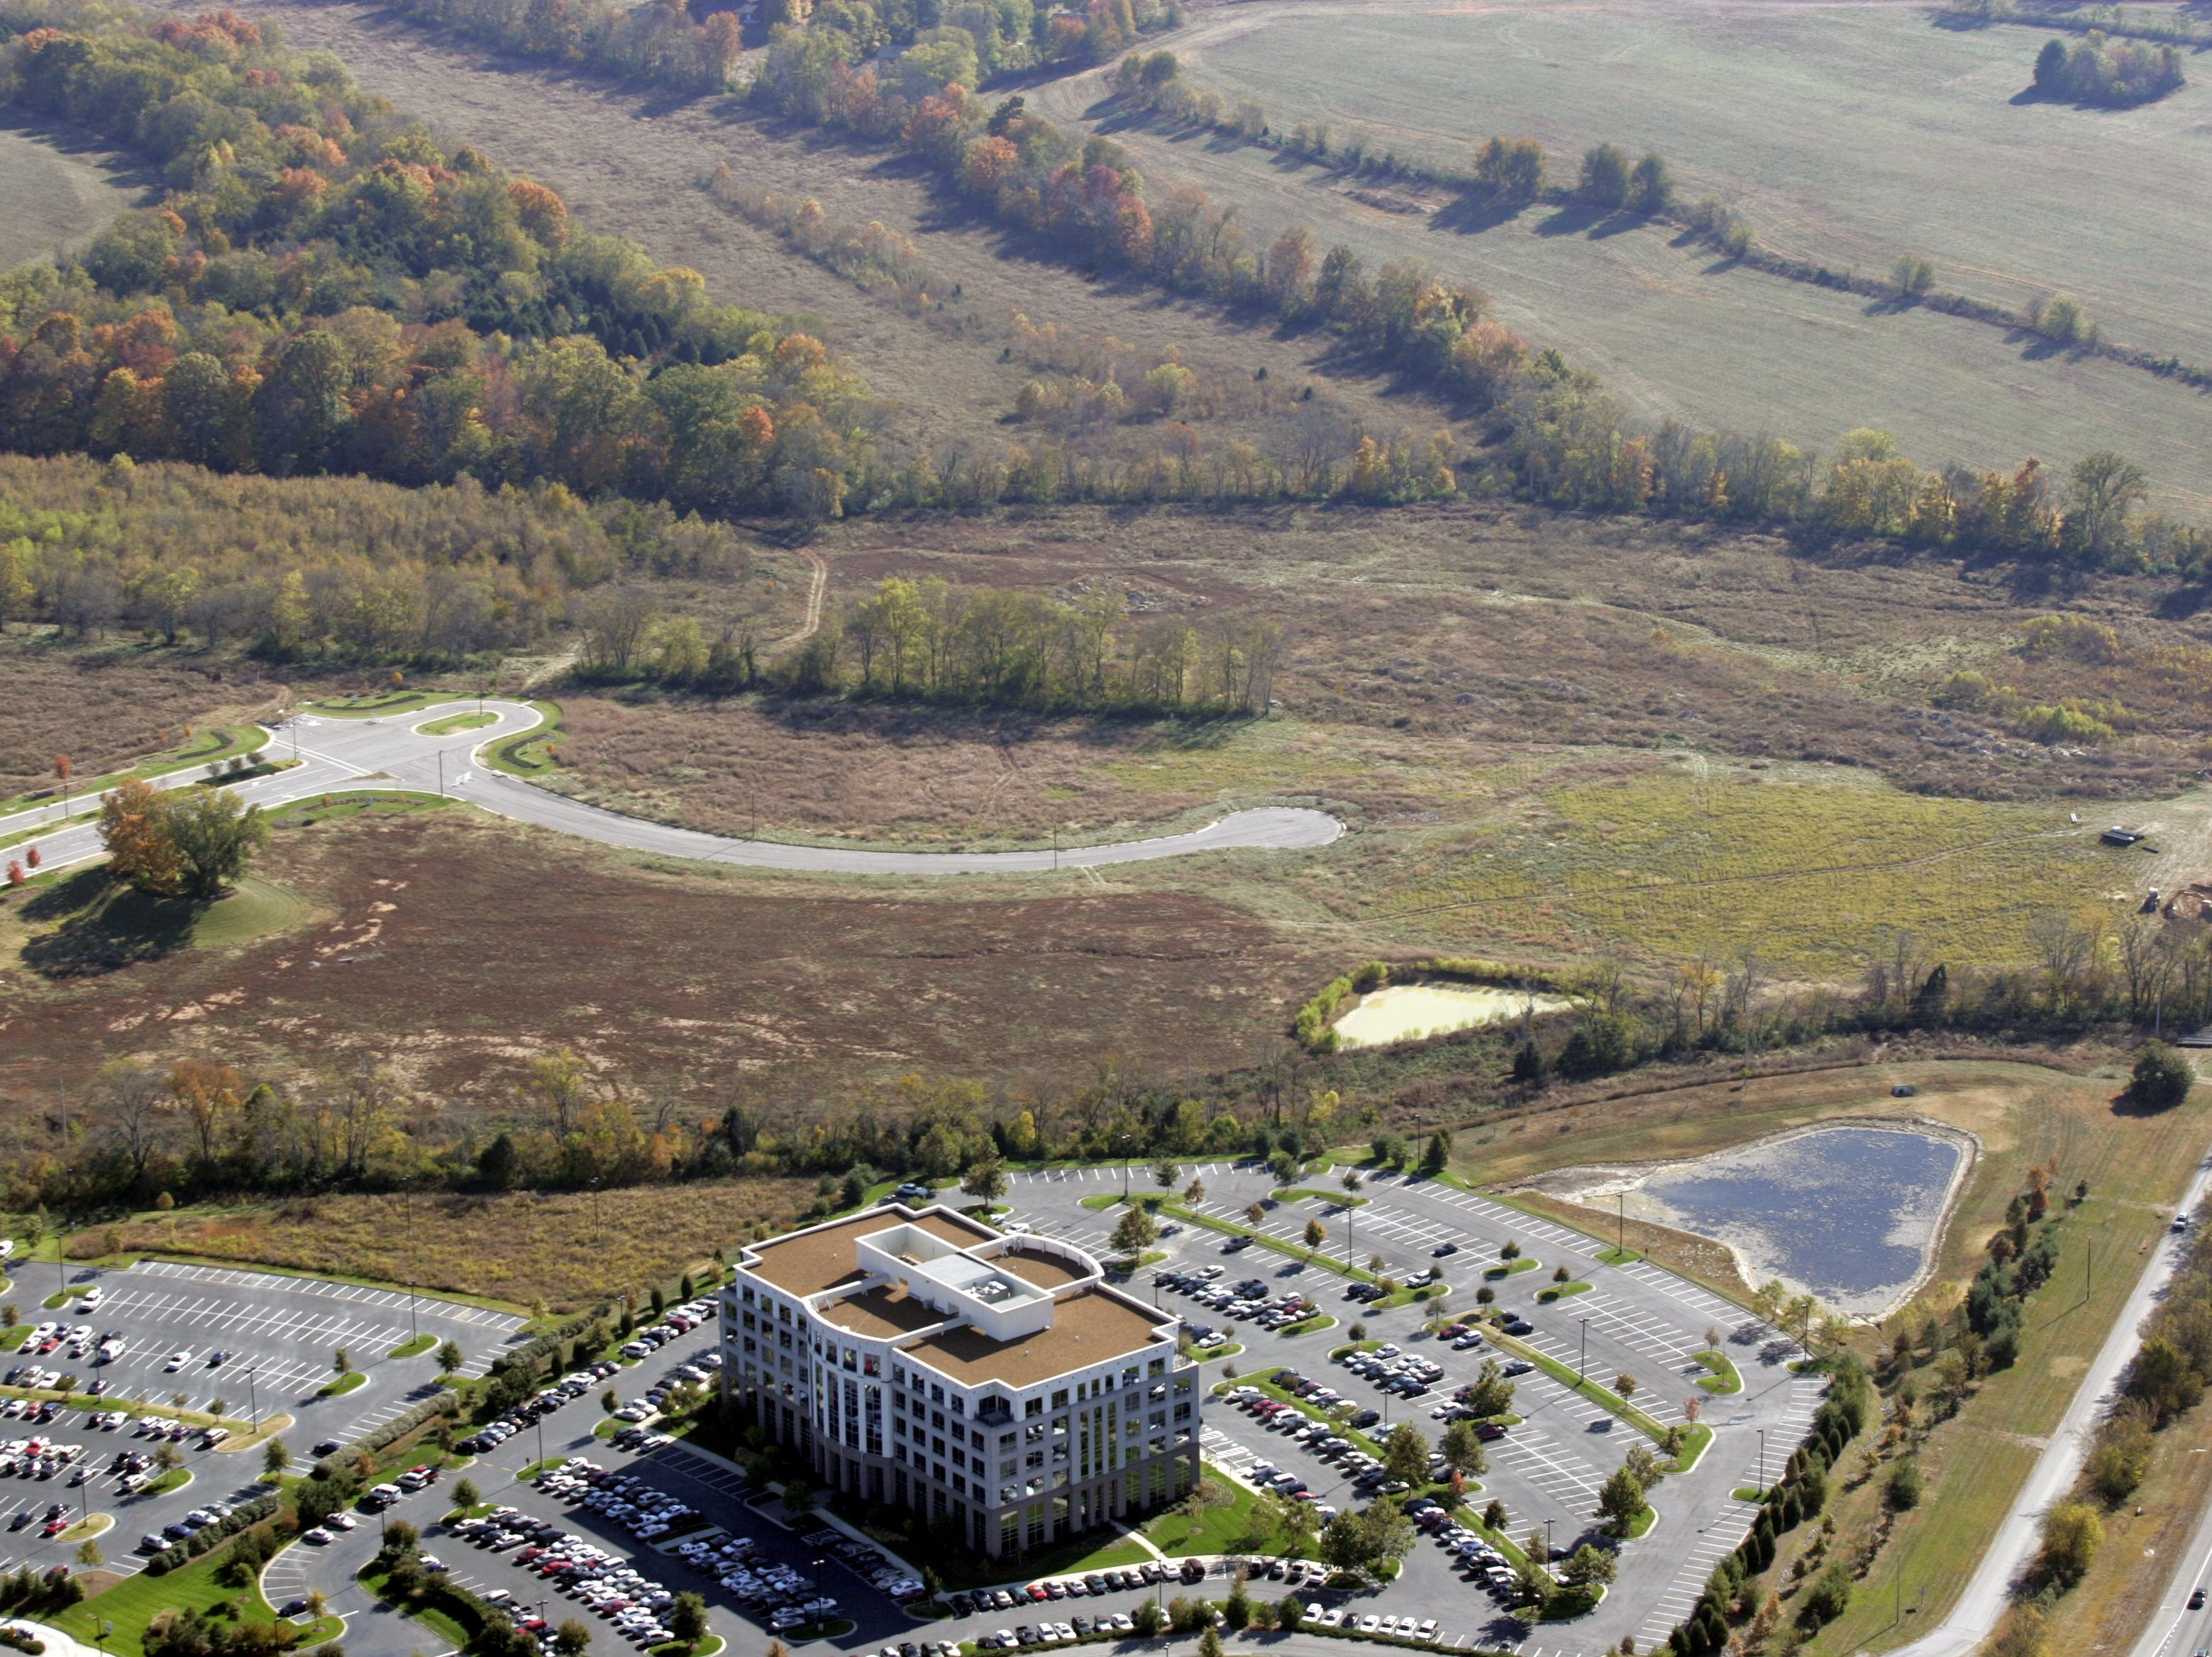 People familiar with the Nashville office market said the site for a Nissan headquarters in 2005 probably was within developer Crescent Resources' 277-acres development south of Cool Springs Parkway near Interstate 65.-